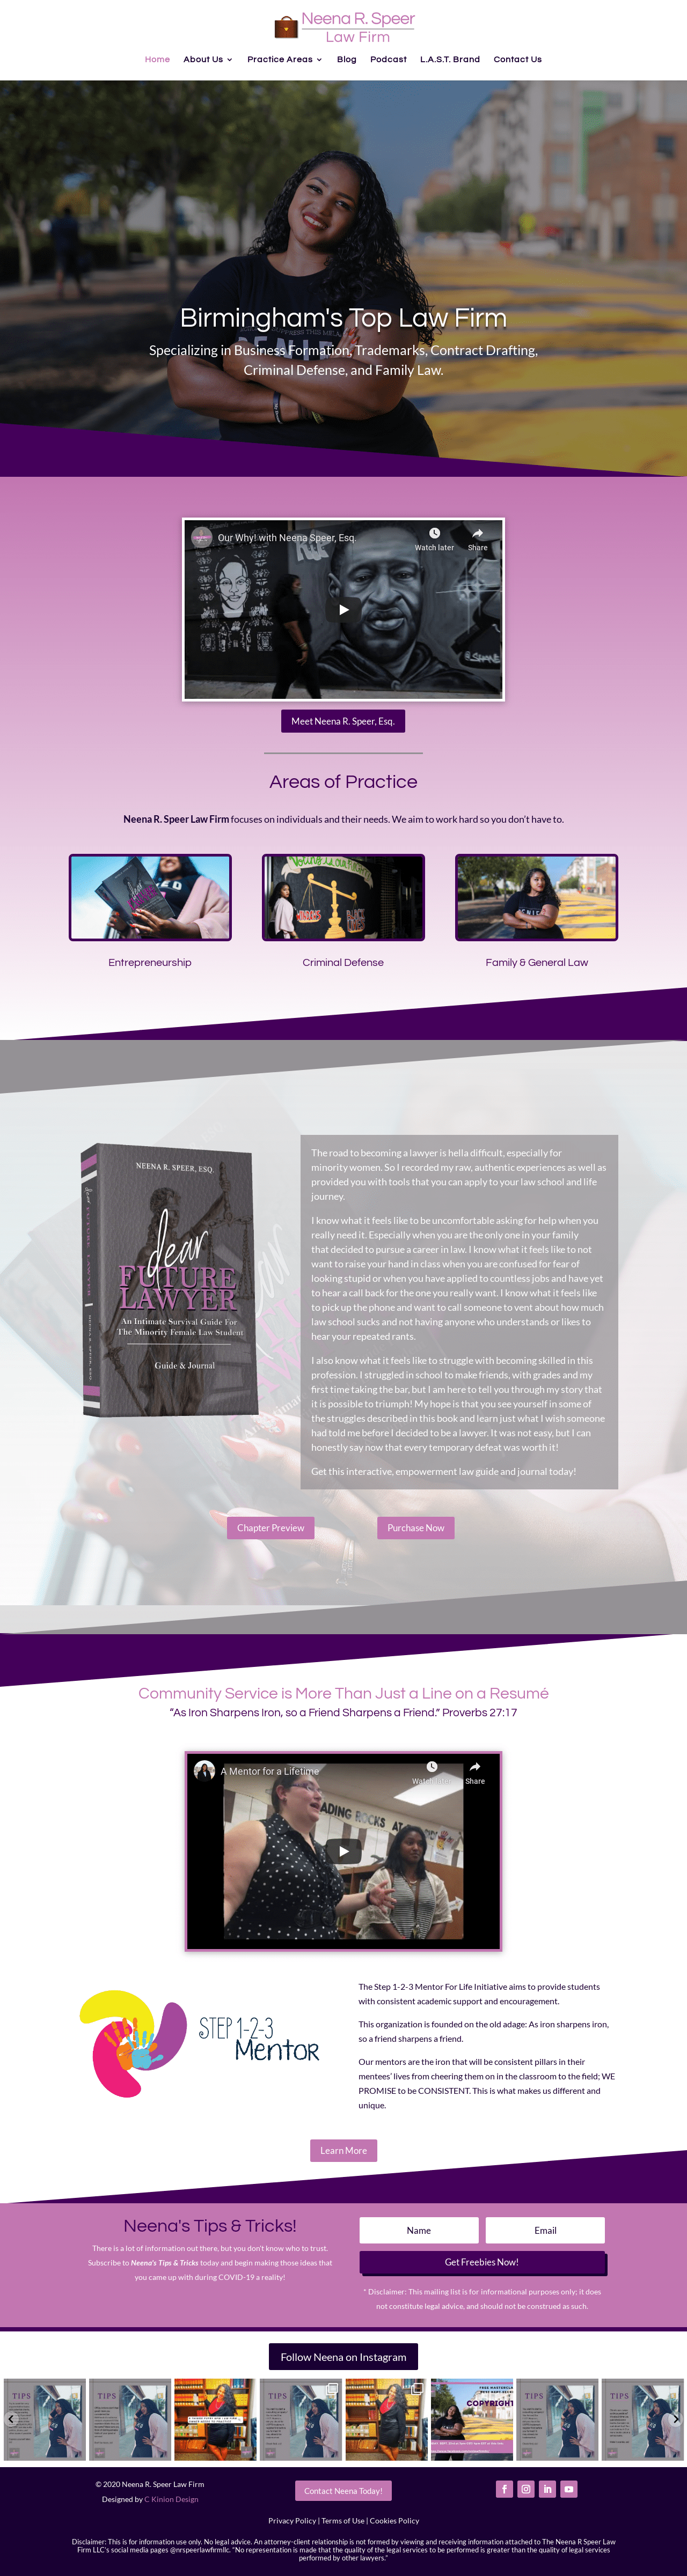 Birmingham-Web-Design-Agency-C-Kinion-Design- Neena R. Speer Law Firm - Full Page